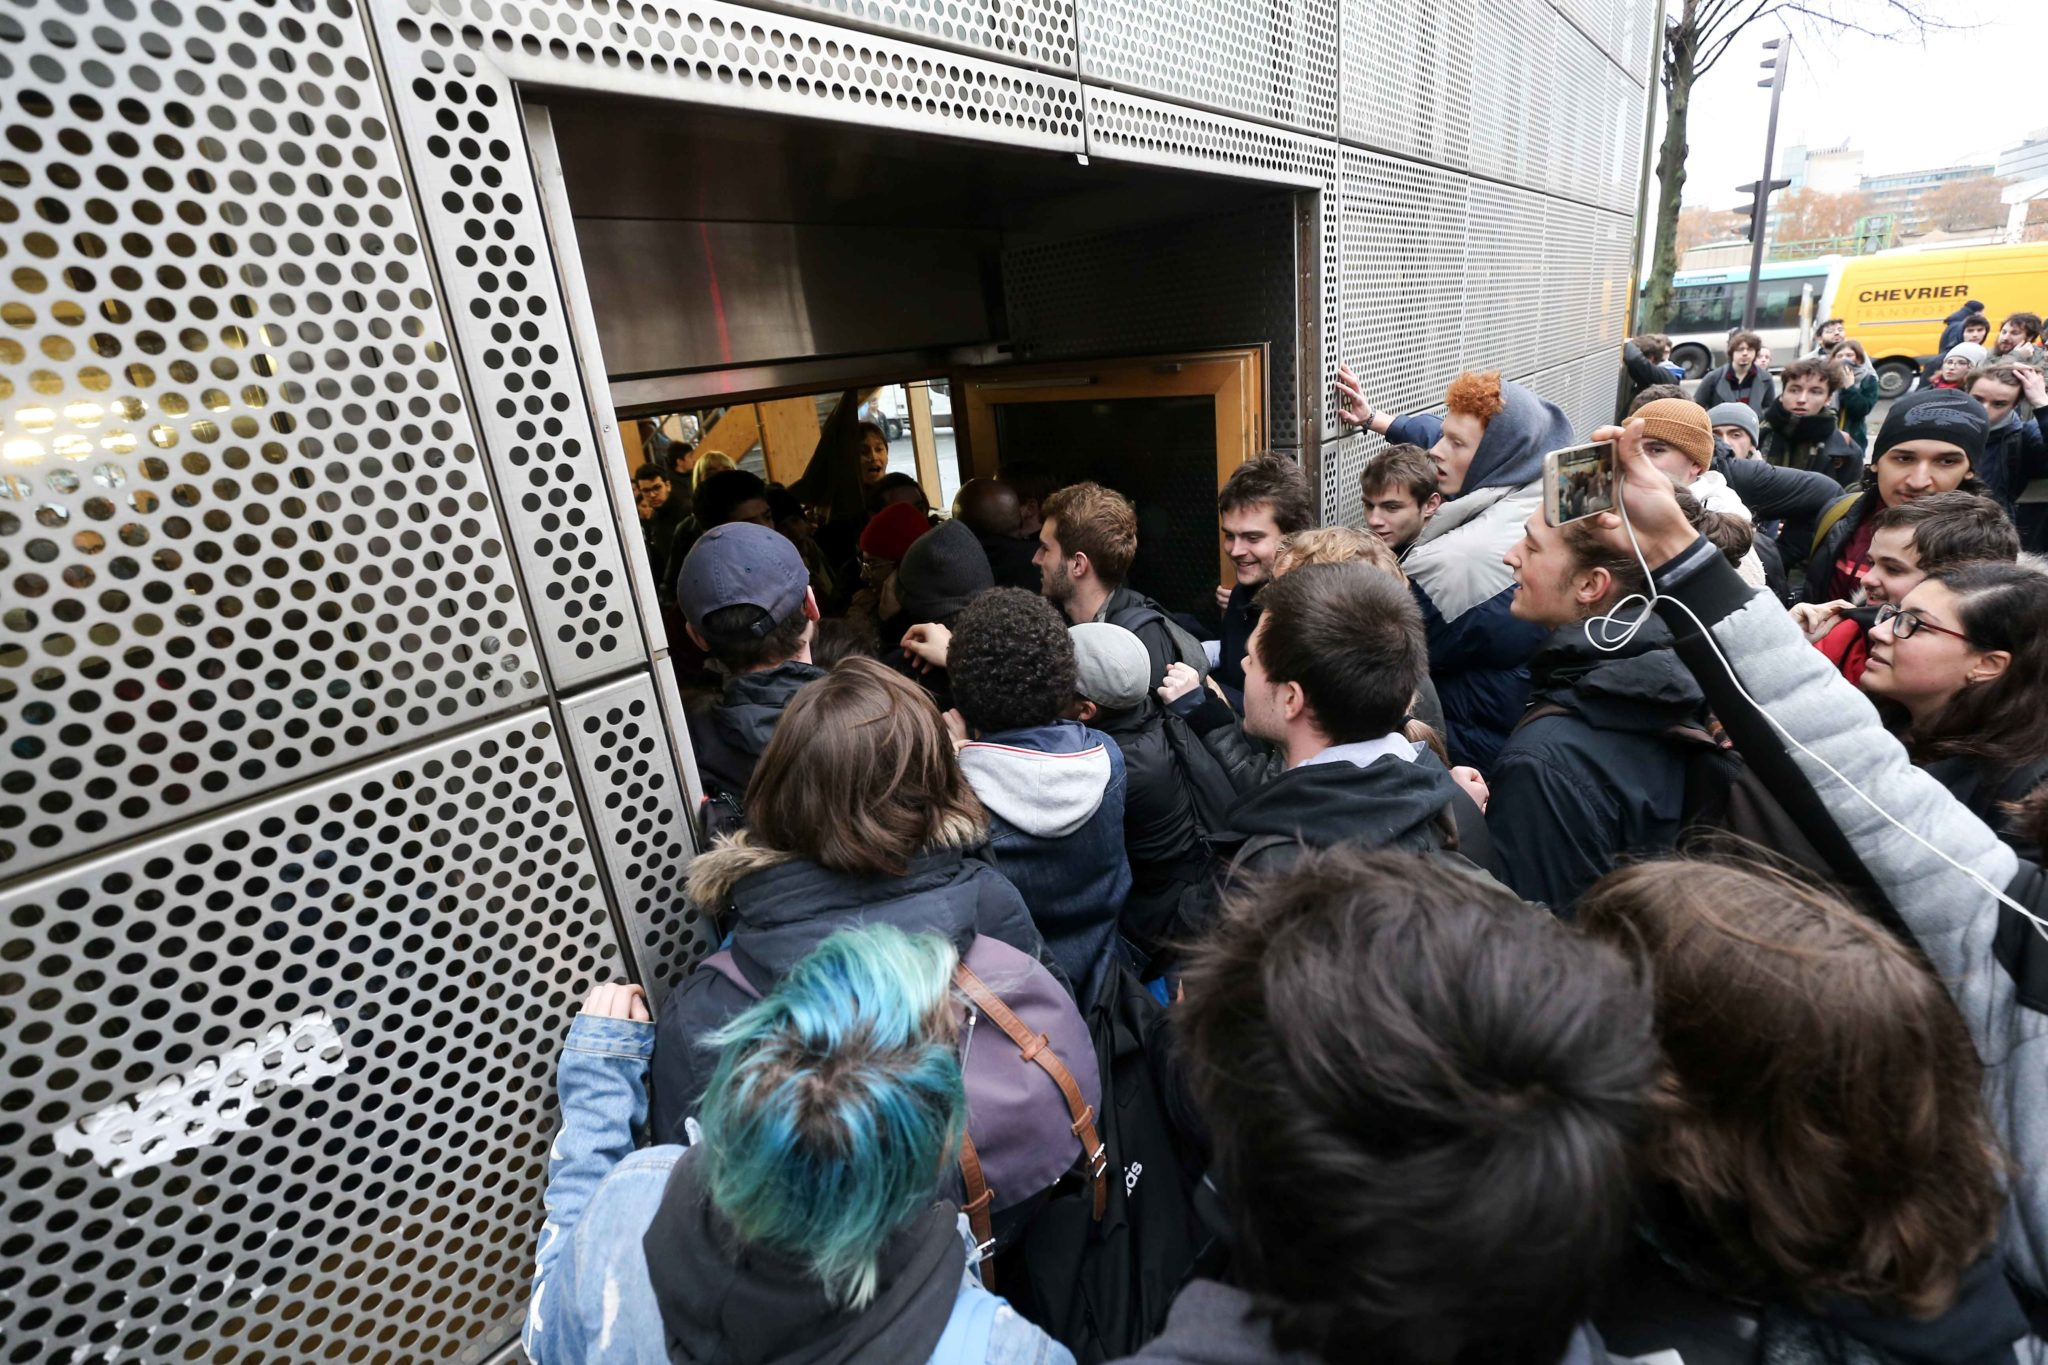 Des étudiants forcent l'entrée d'un restaurant universitaire. © Michel Stoupak. Mar 26.11.2019, 13:13:11.